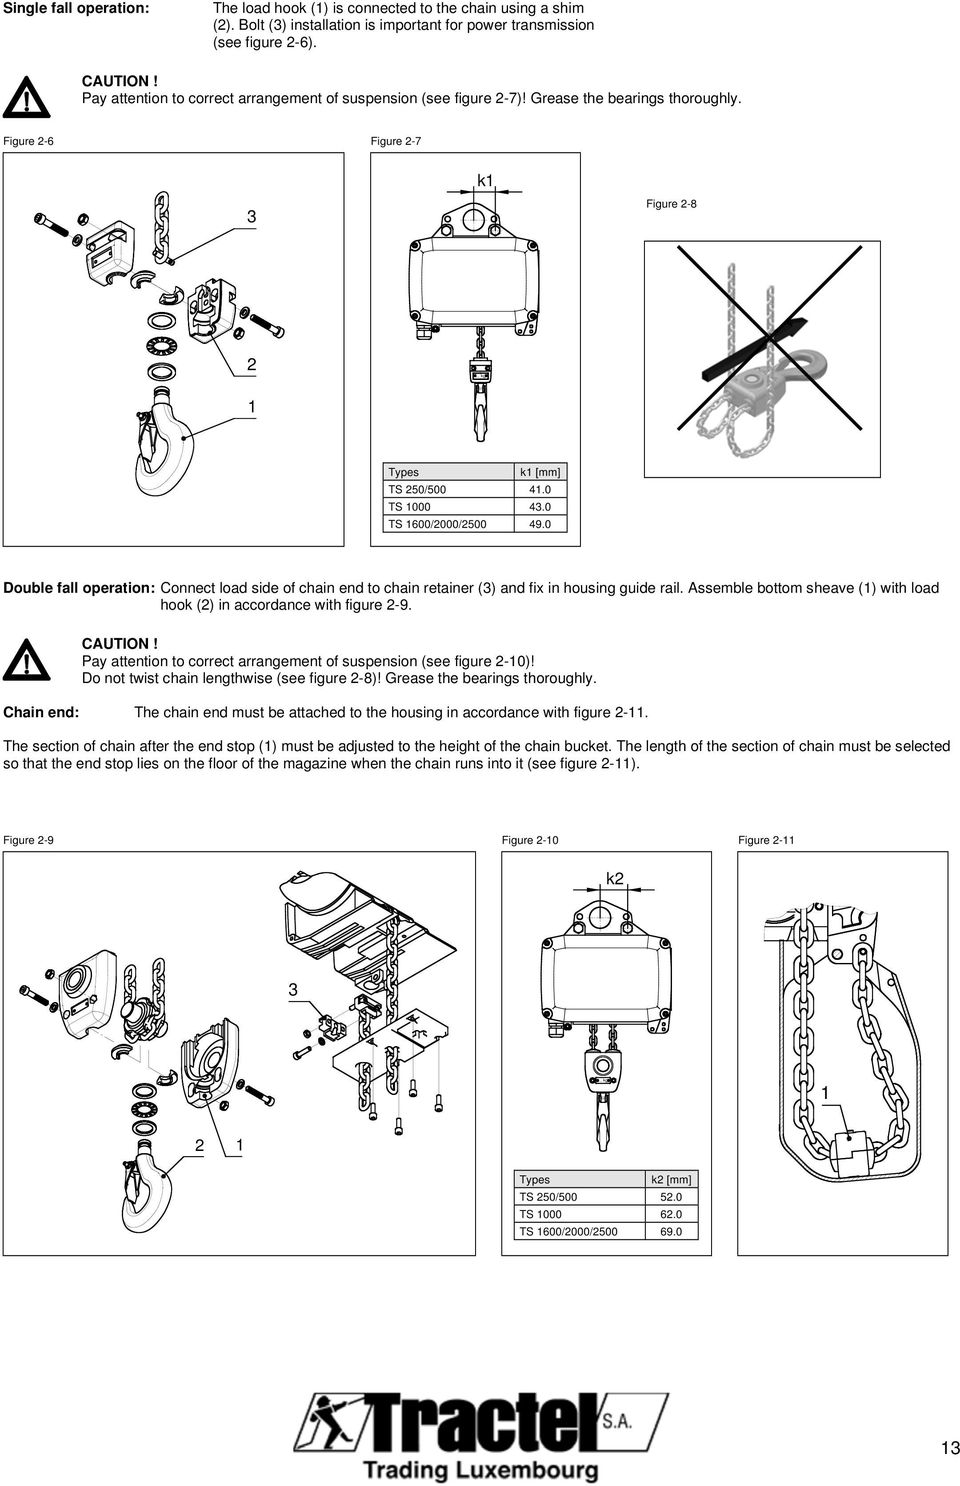 0 Double fall operation: Connect load side of chain end to chain retainer (3) and fi in housing guide rail. Assemble bottom sheave () with load hook () in accordance with figure 9. CAUTION!